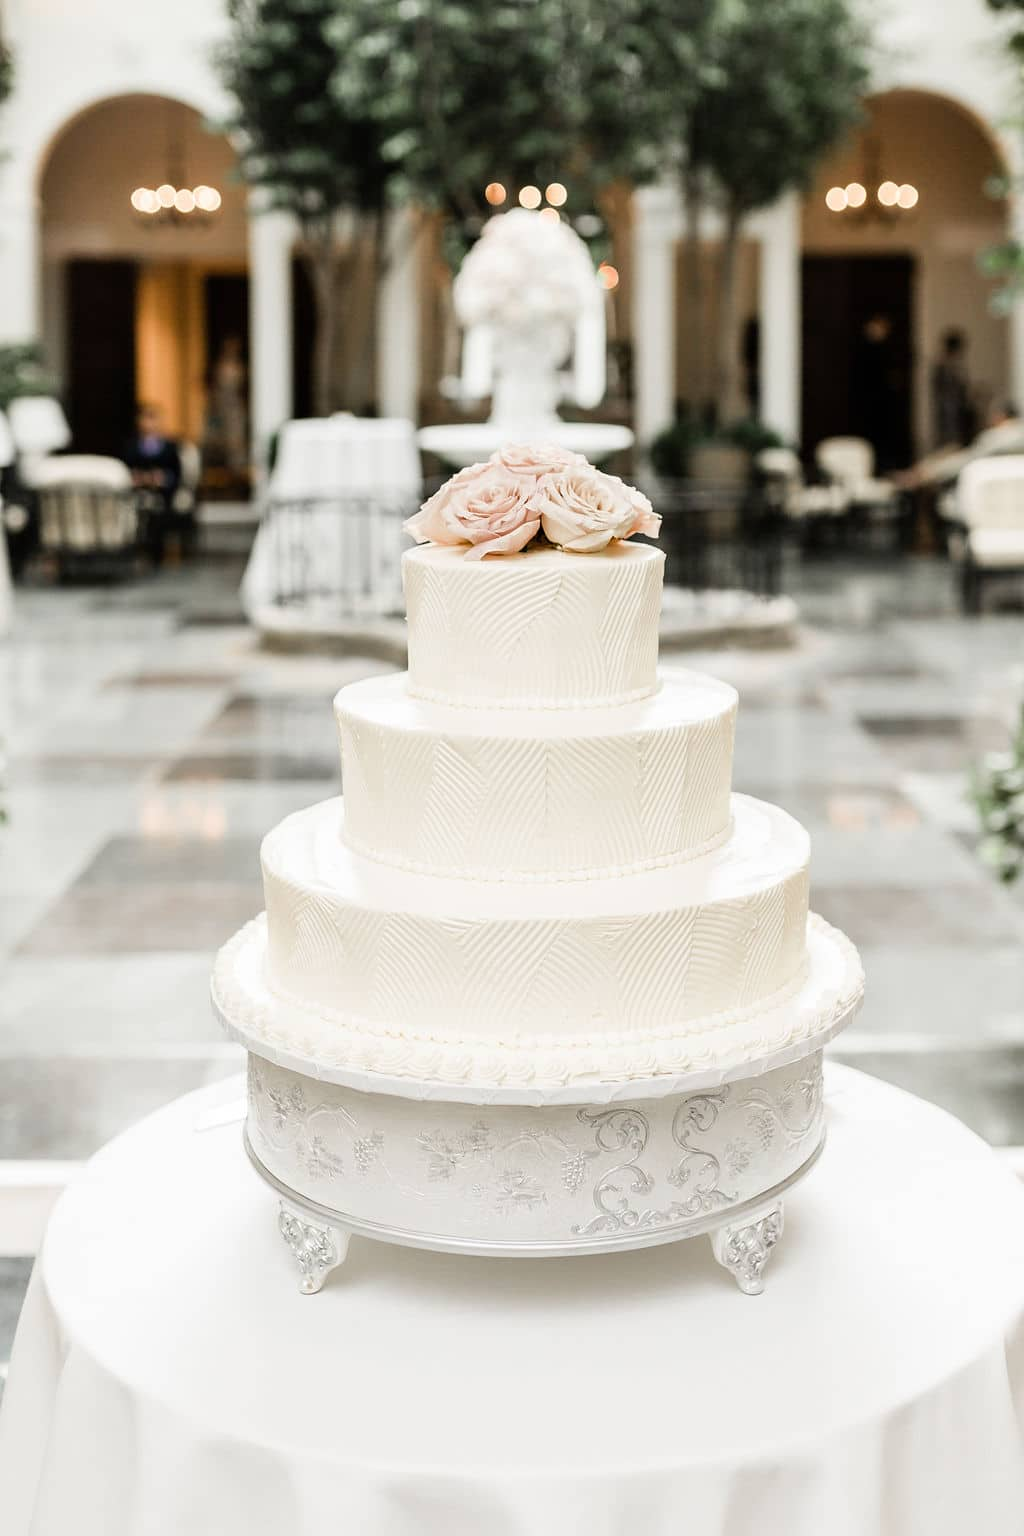 white wedding cake with blush pink flowers on top